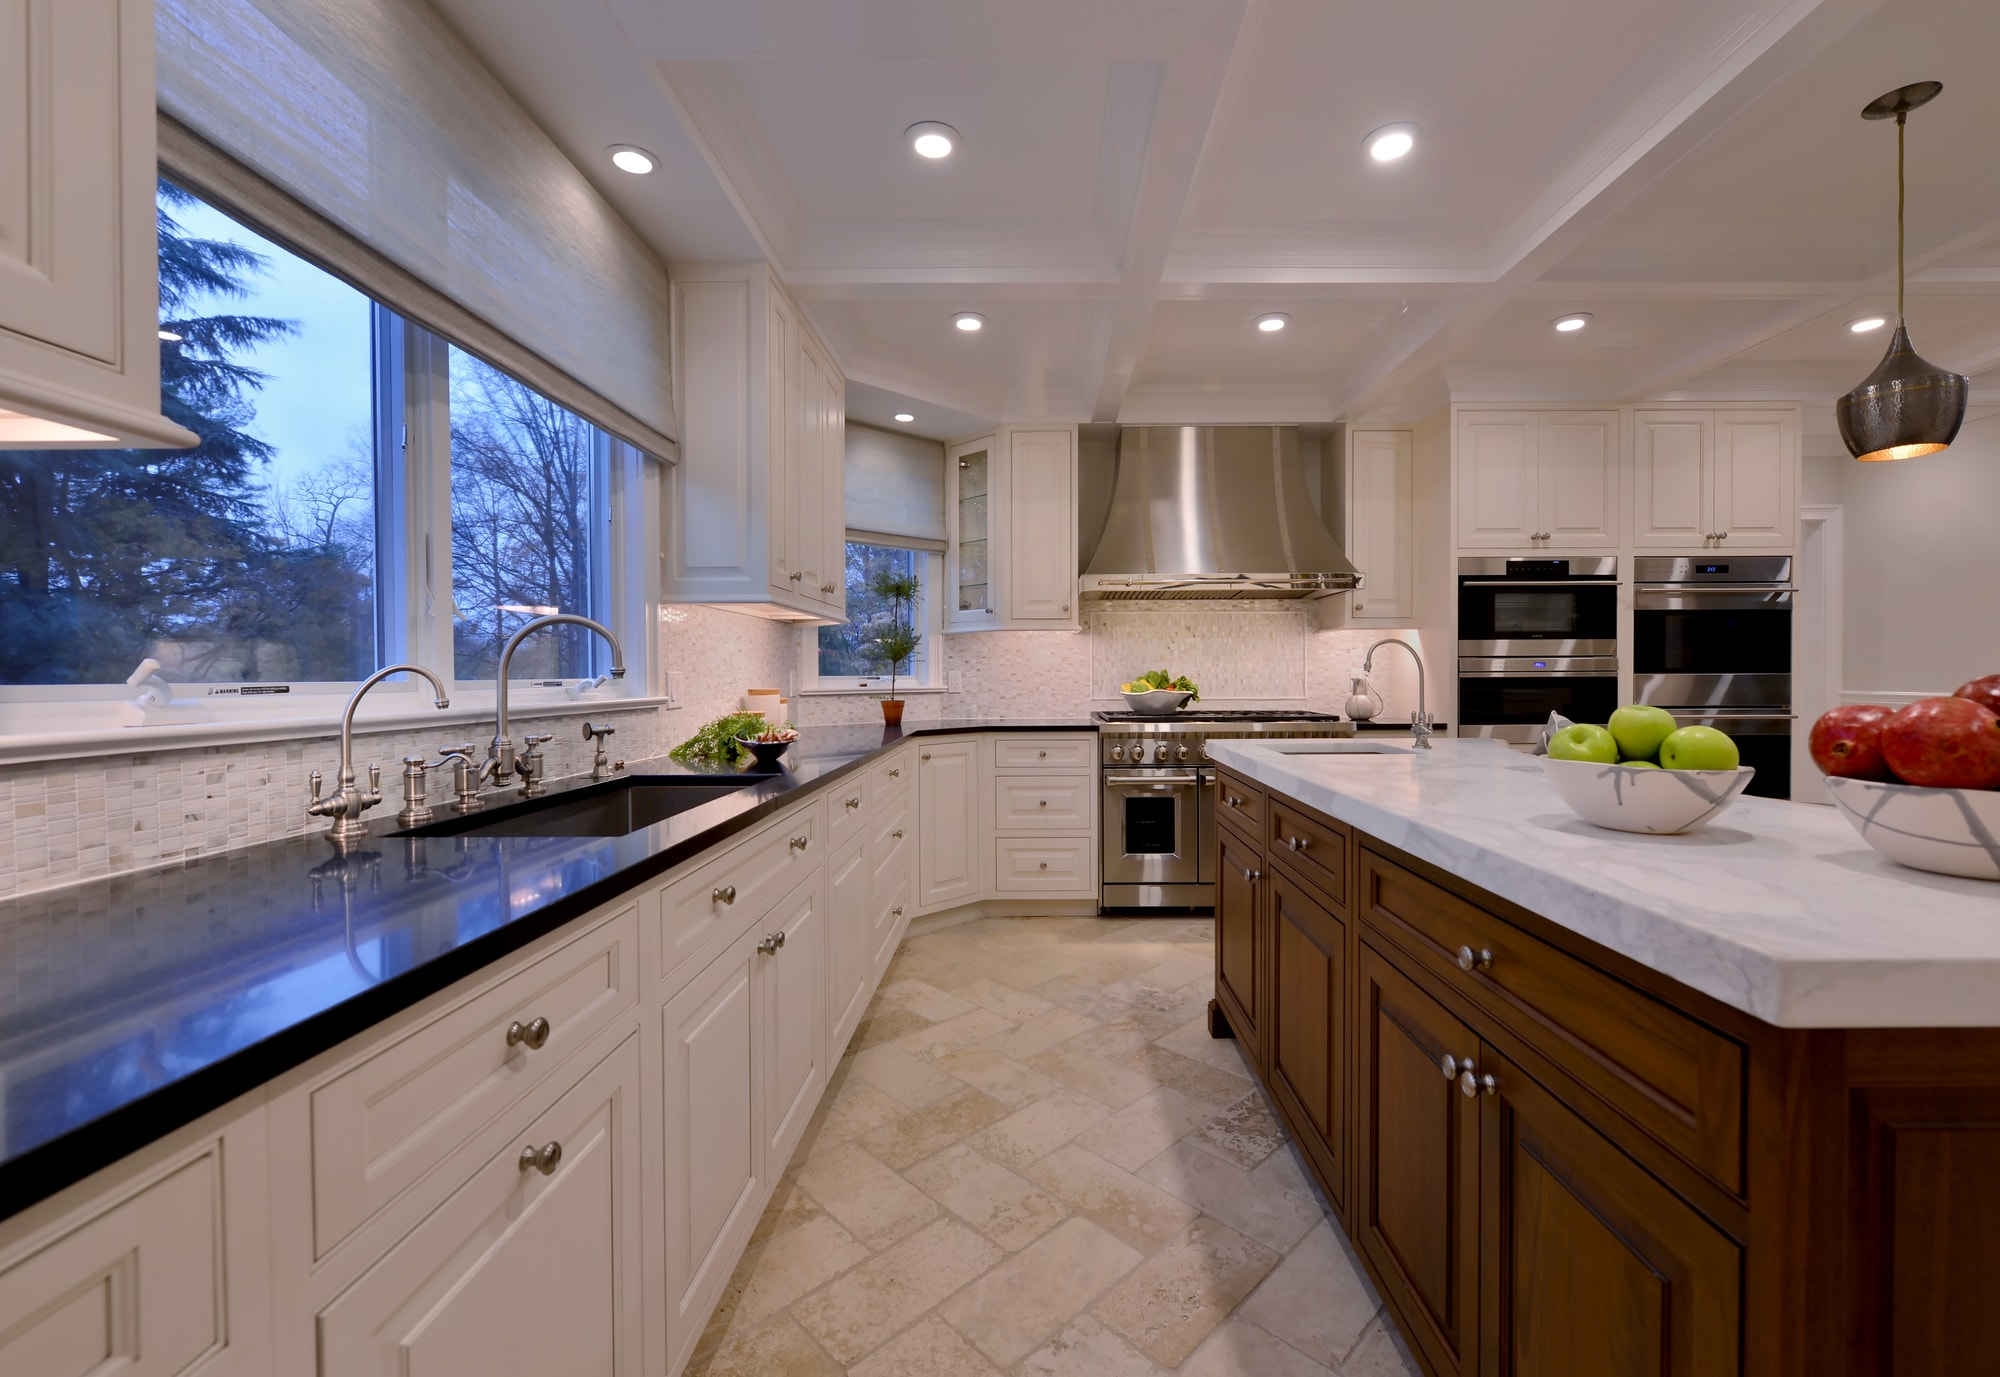 Transitional style kitchen with bright light and high ceiling